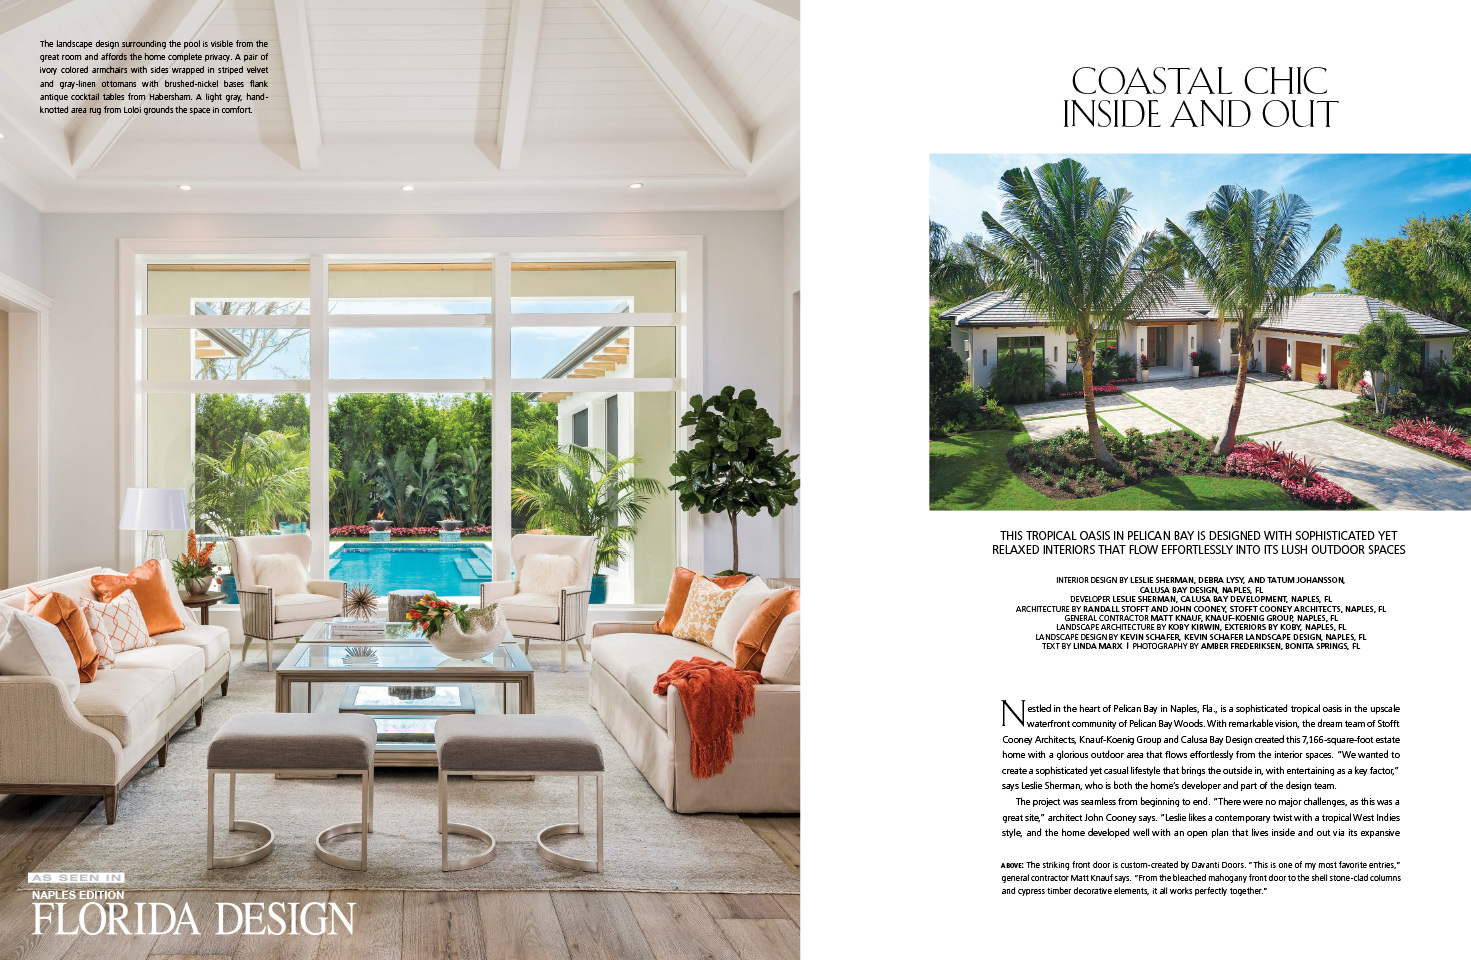 Florida Design Magazine Mhk Architecture Planning